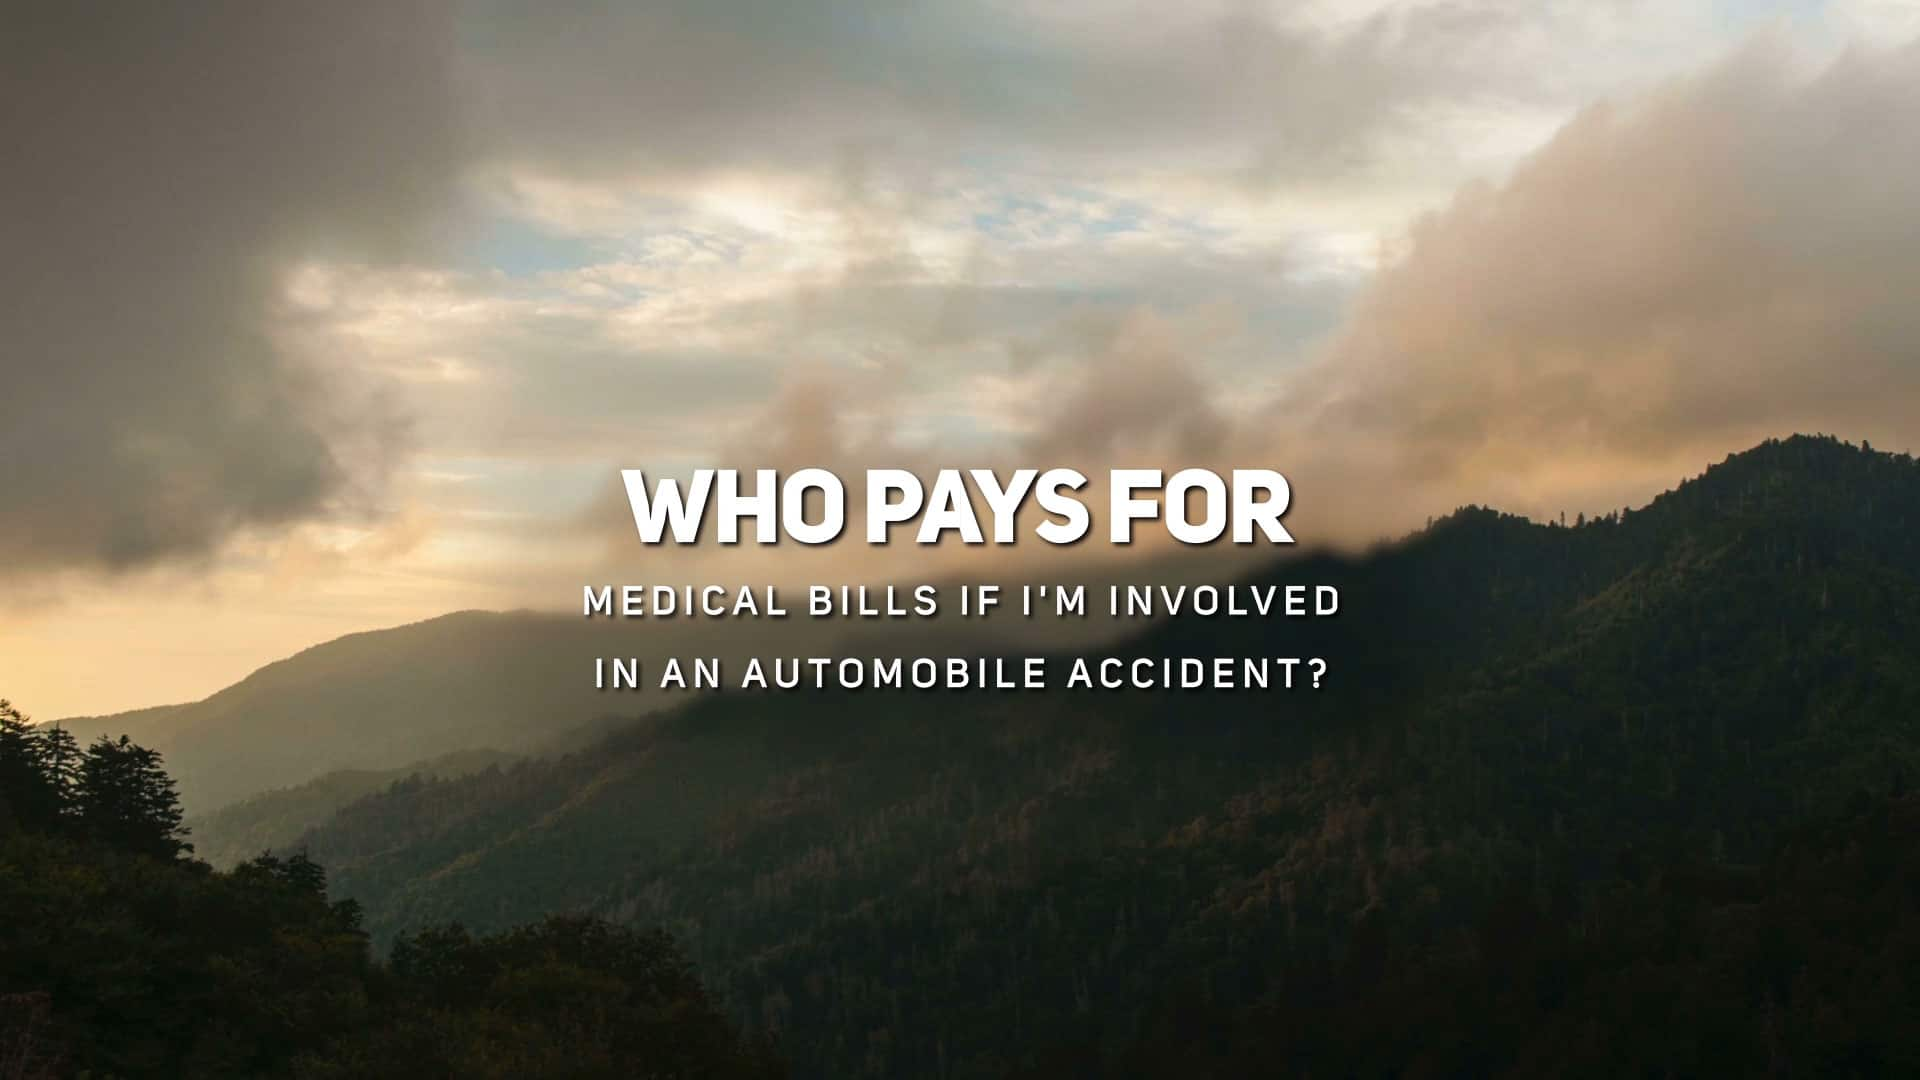 Who Pays For Medical Bills If I'm Involved in an Automobile Accident